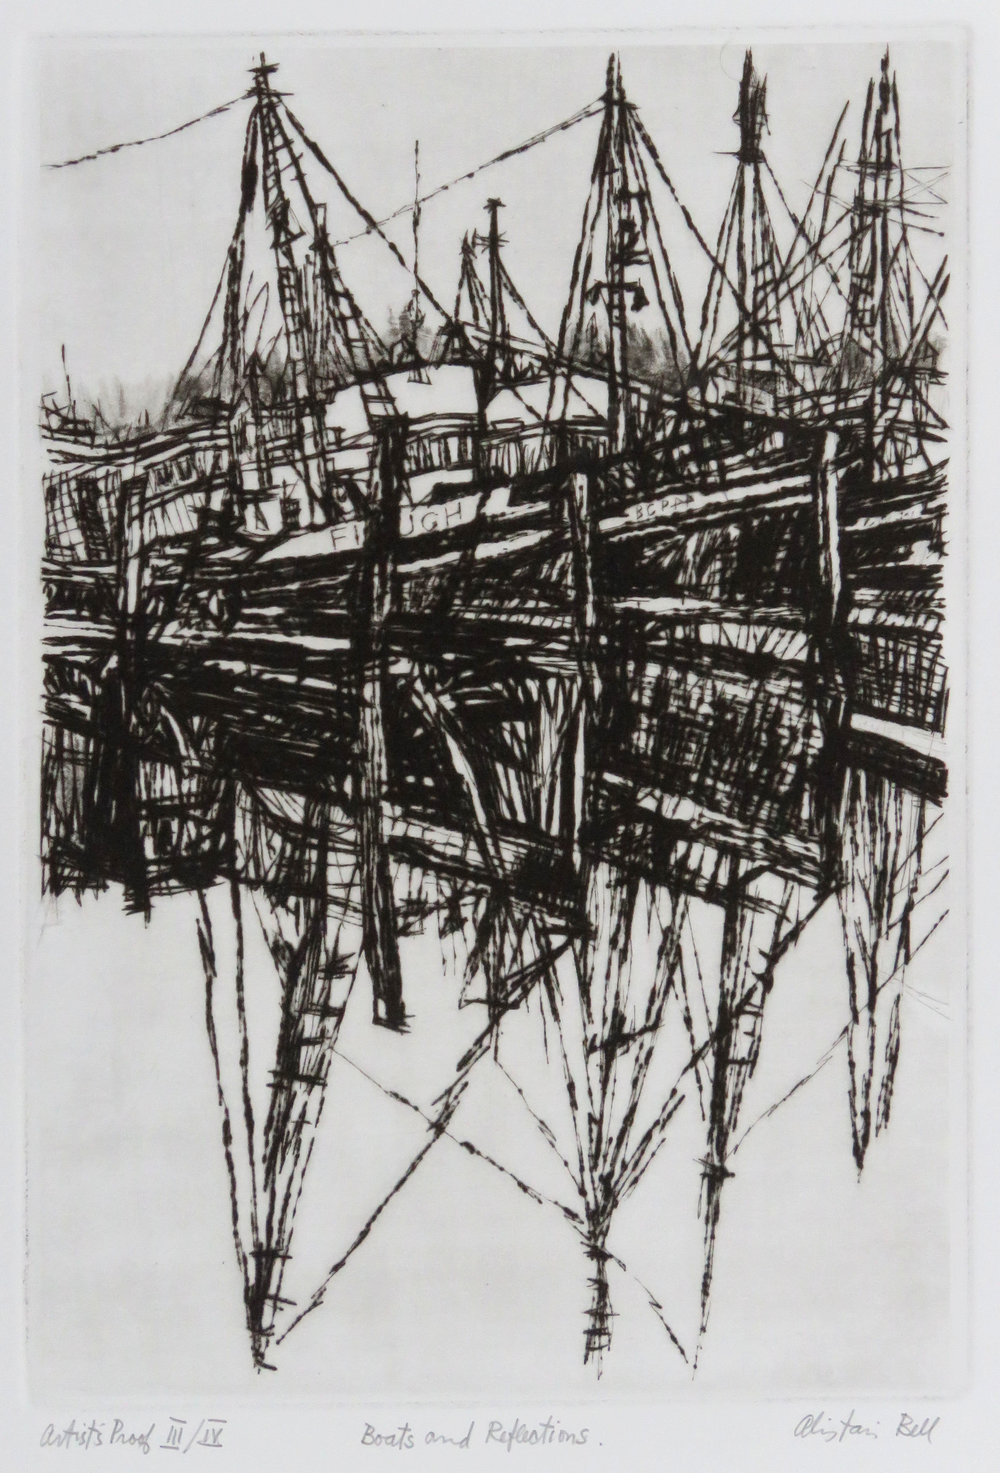 Boats and Reflections drypoint.JPG